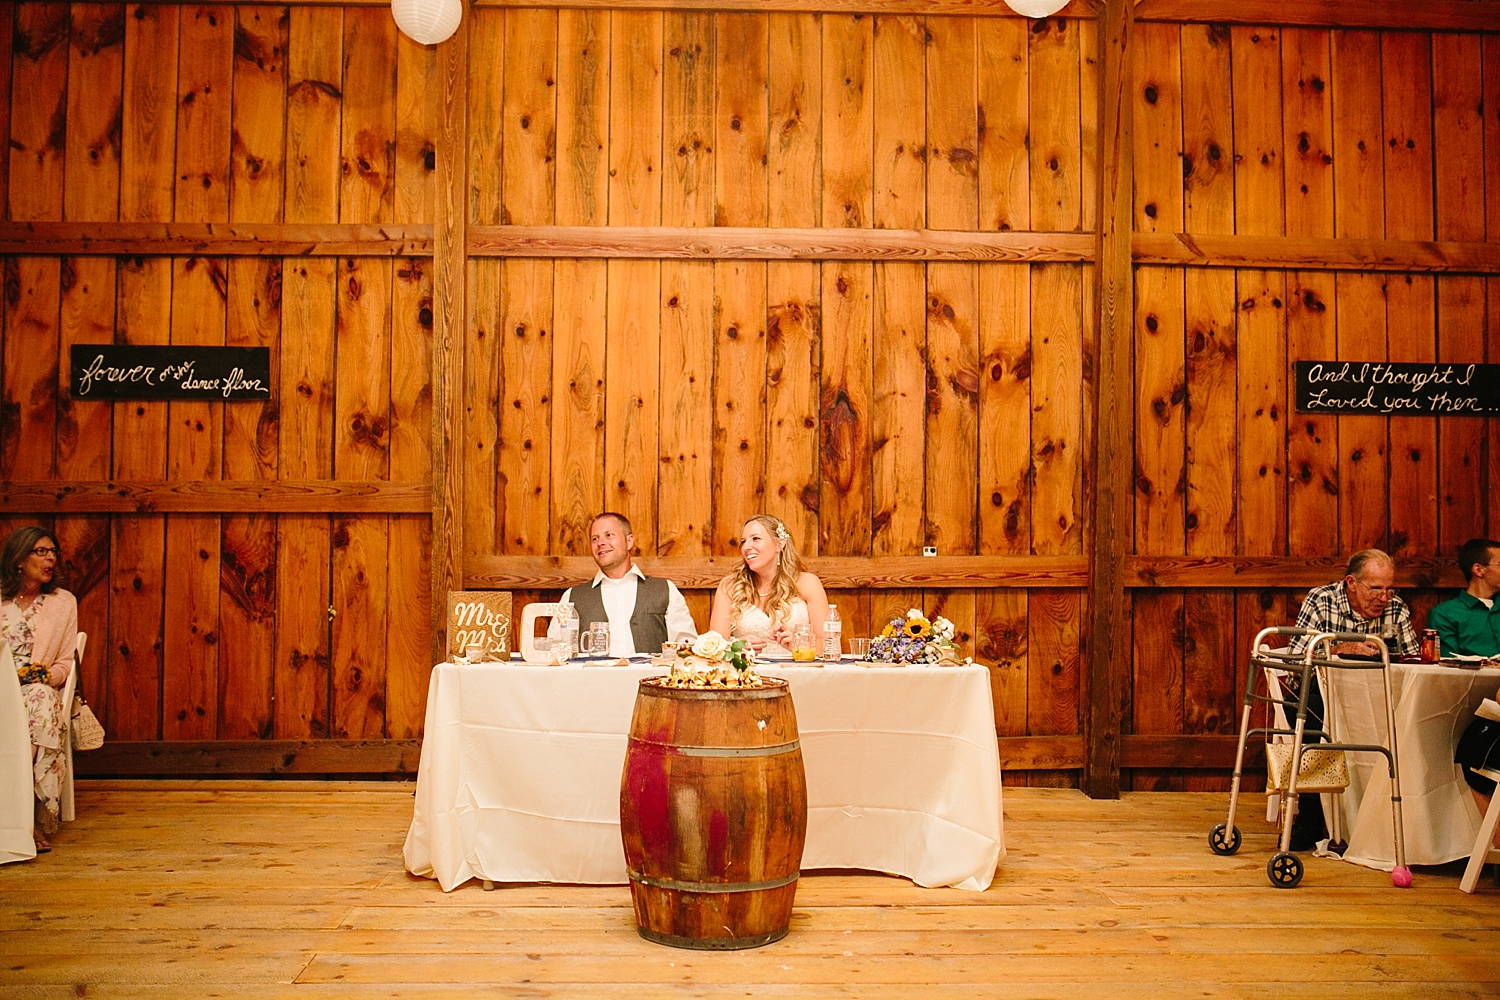 jennyryan_newbeginnings_farmstead_upstatenewyork_wedding_image132.jpg